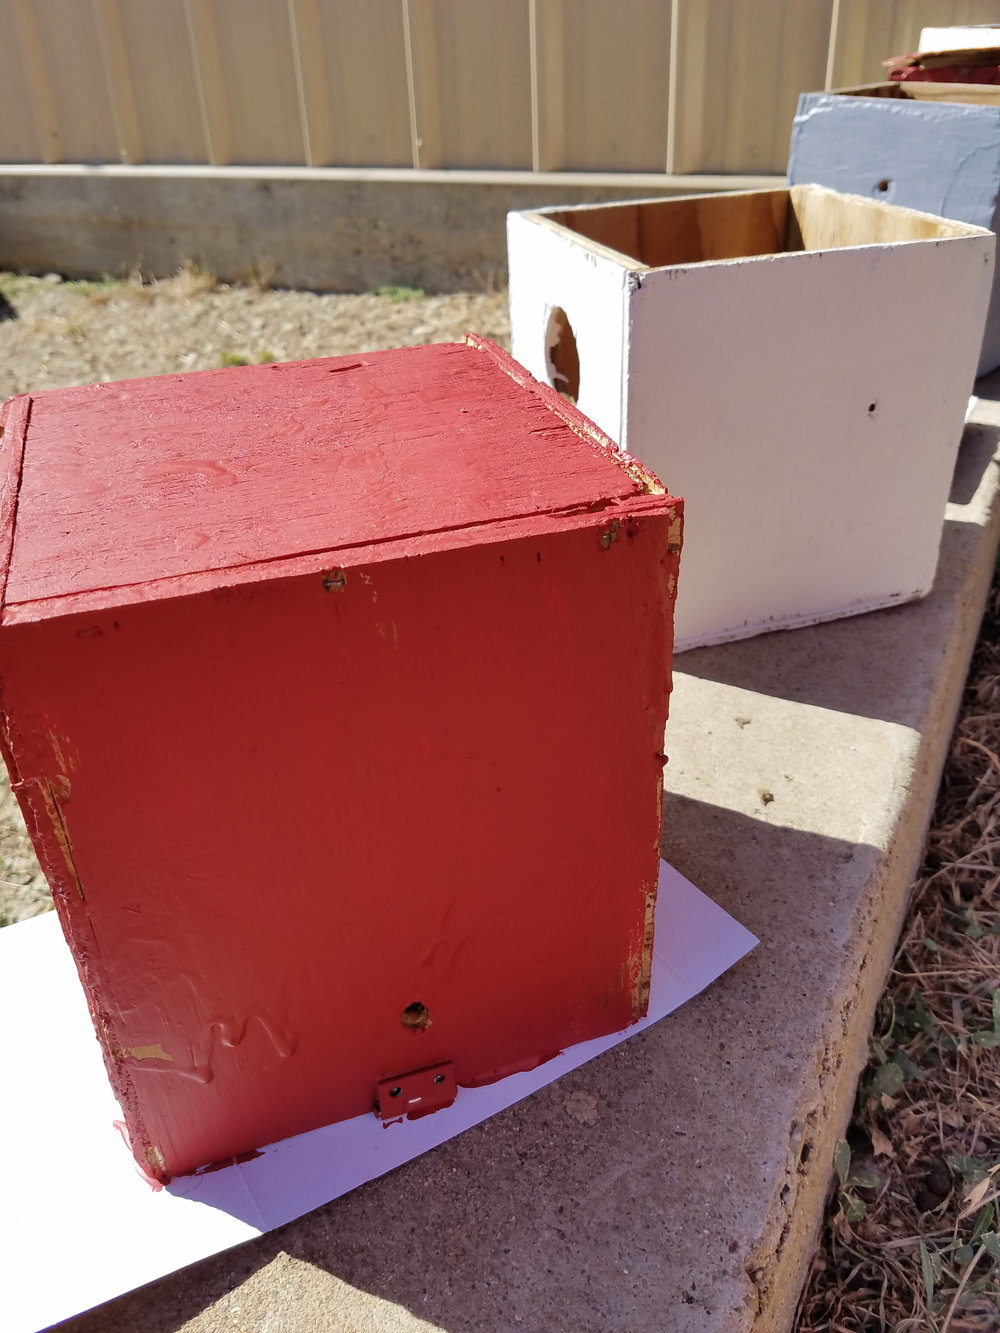 Thankful for the Texas heat so that the base coats could dry fast on the birdhouses.